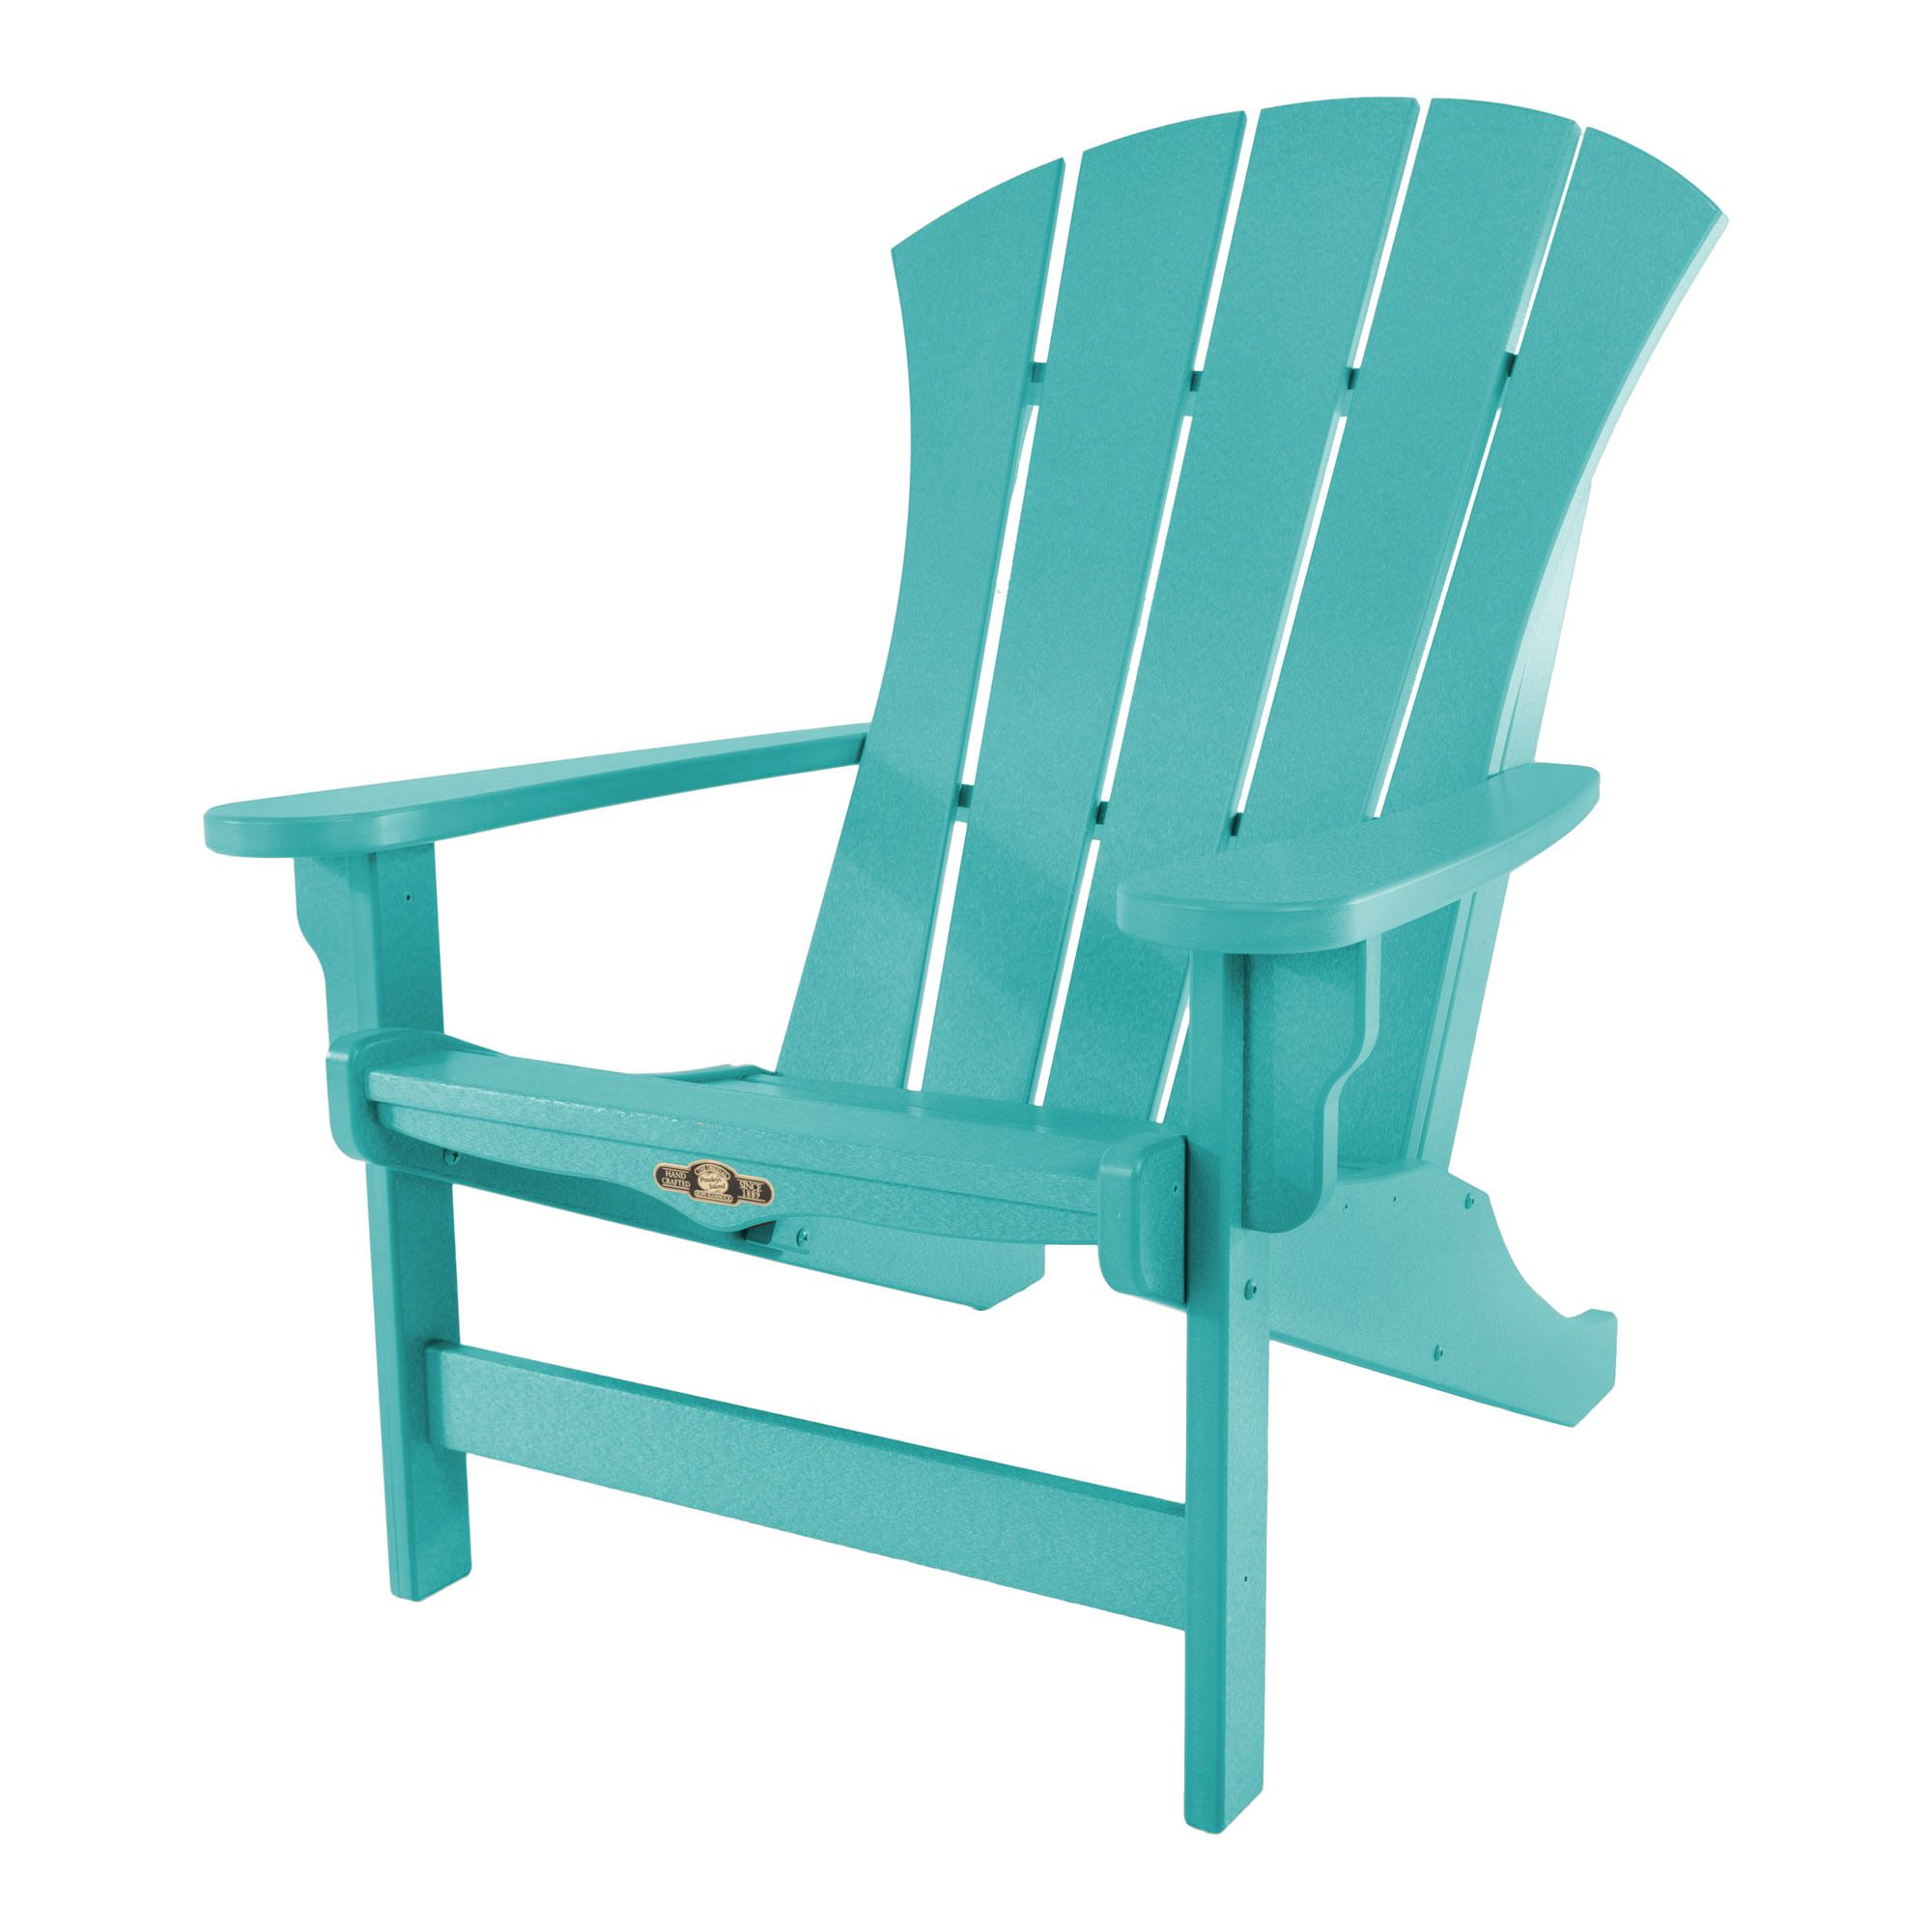 Sunrise Adirondack Chair Pawleys Island